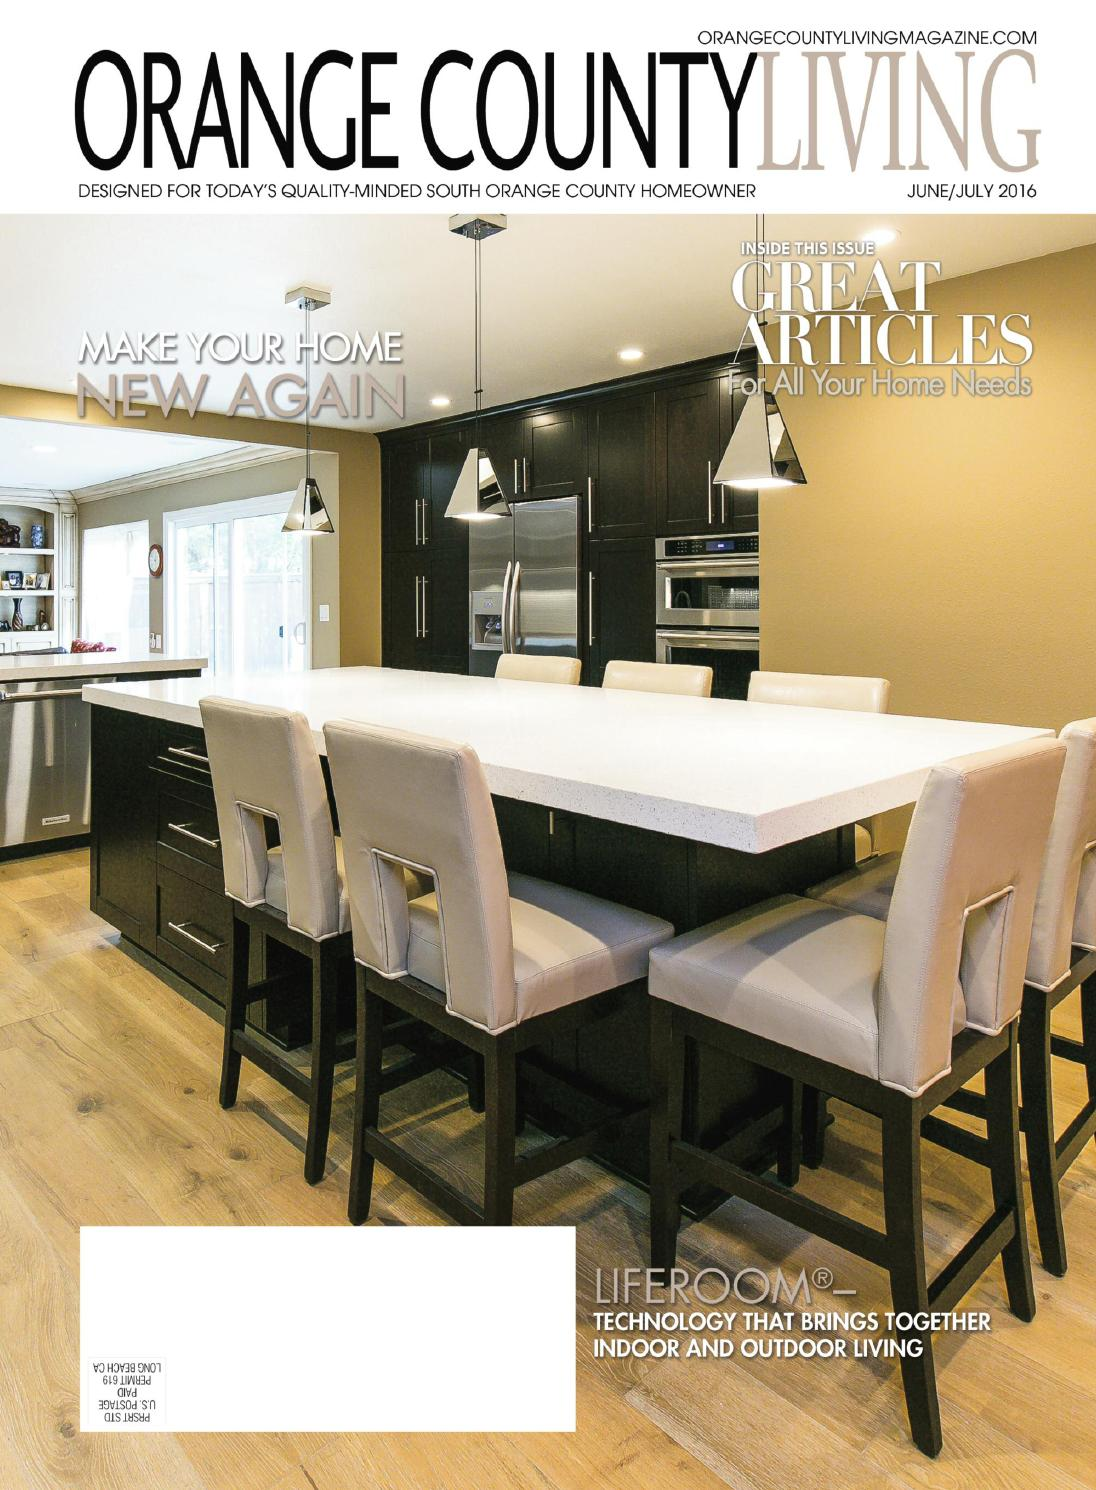 South Orange County Living June July 2016 by AffluentTargetMarketing   issuuSouth Orange County Living June July 2016 by  . Men S Bath House Orange County. Home Design Ideas